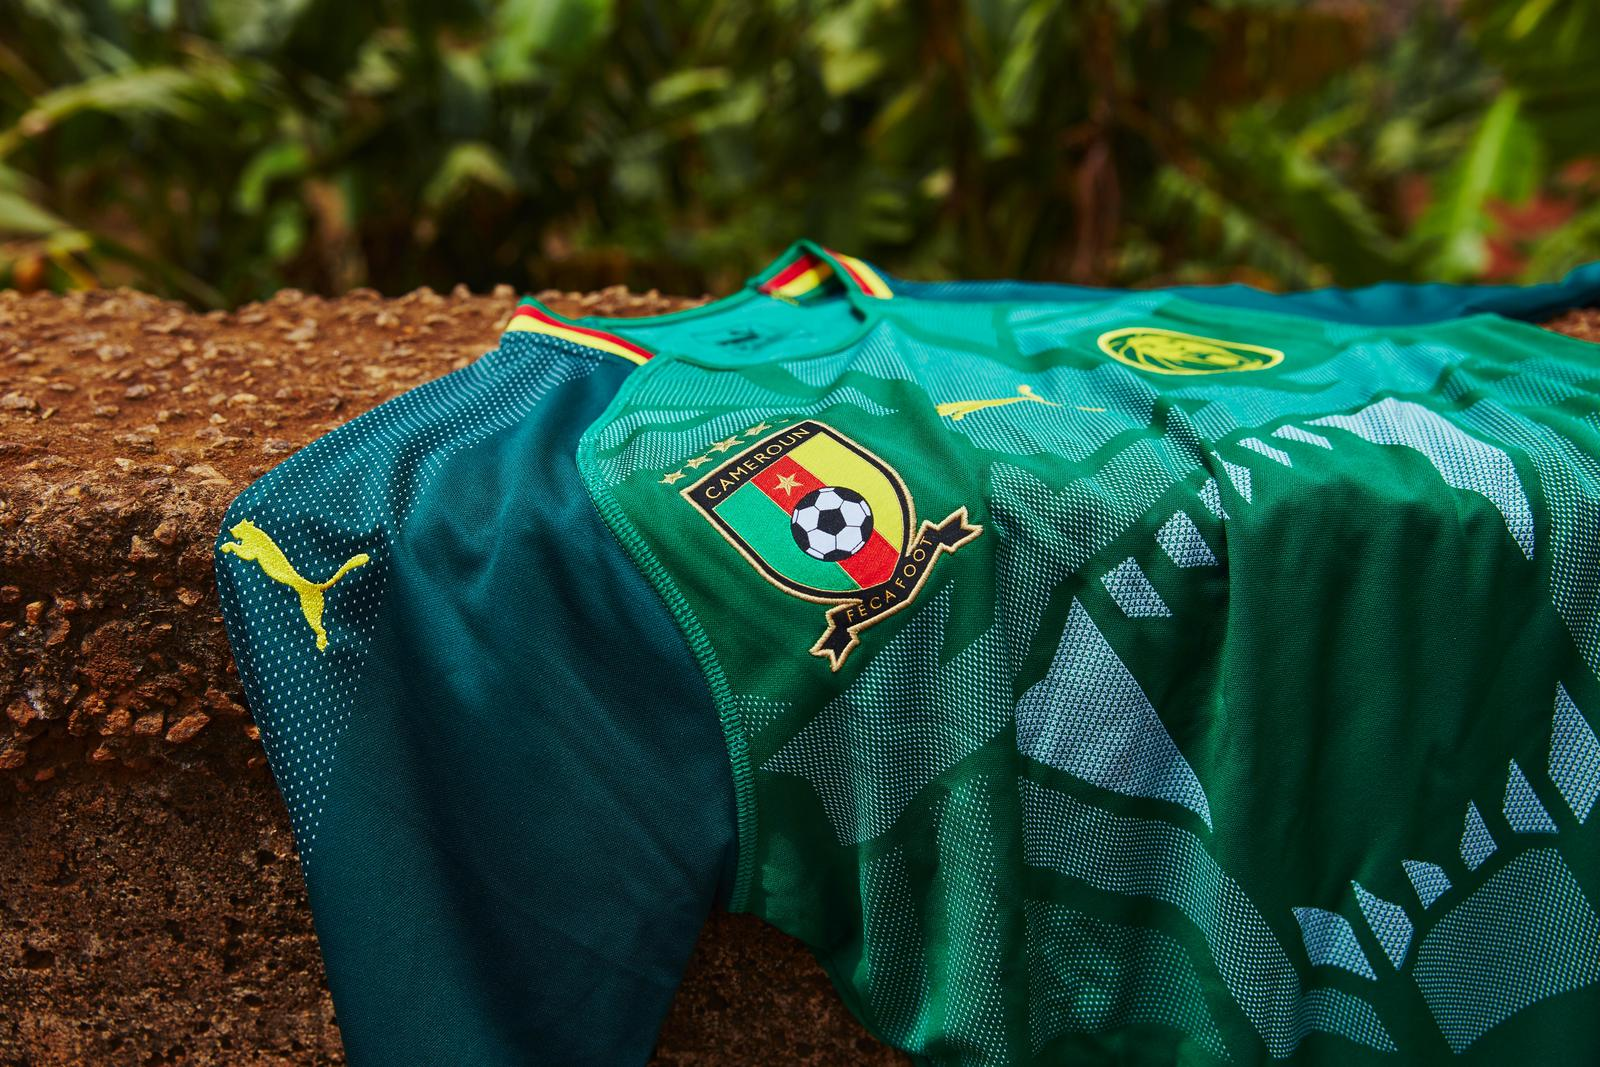 Great Cameroon World Cup 2018 - cameroon_2018_puma_home_kit_c  Collection_30859 .jpg